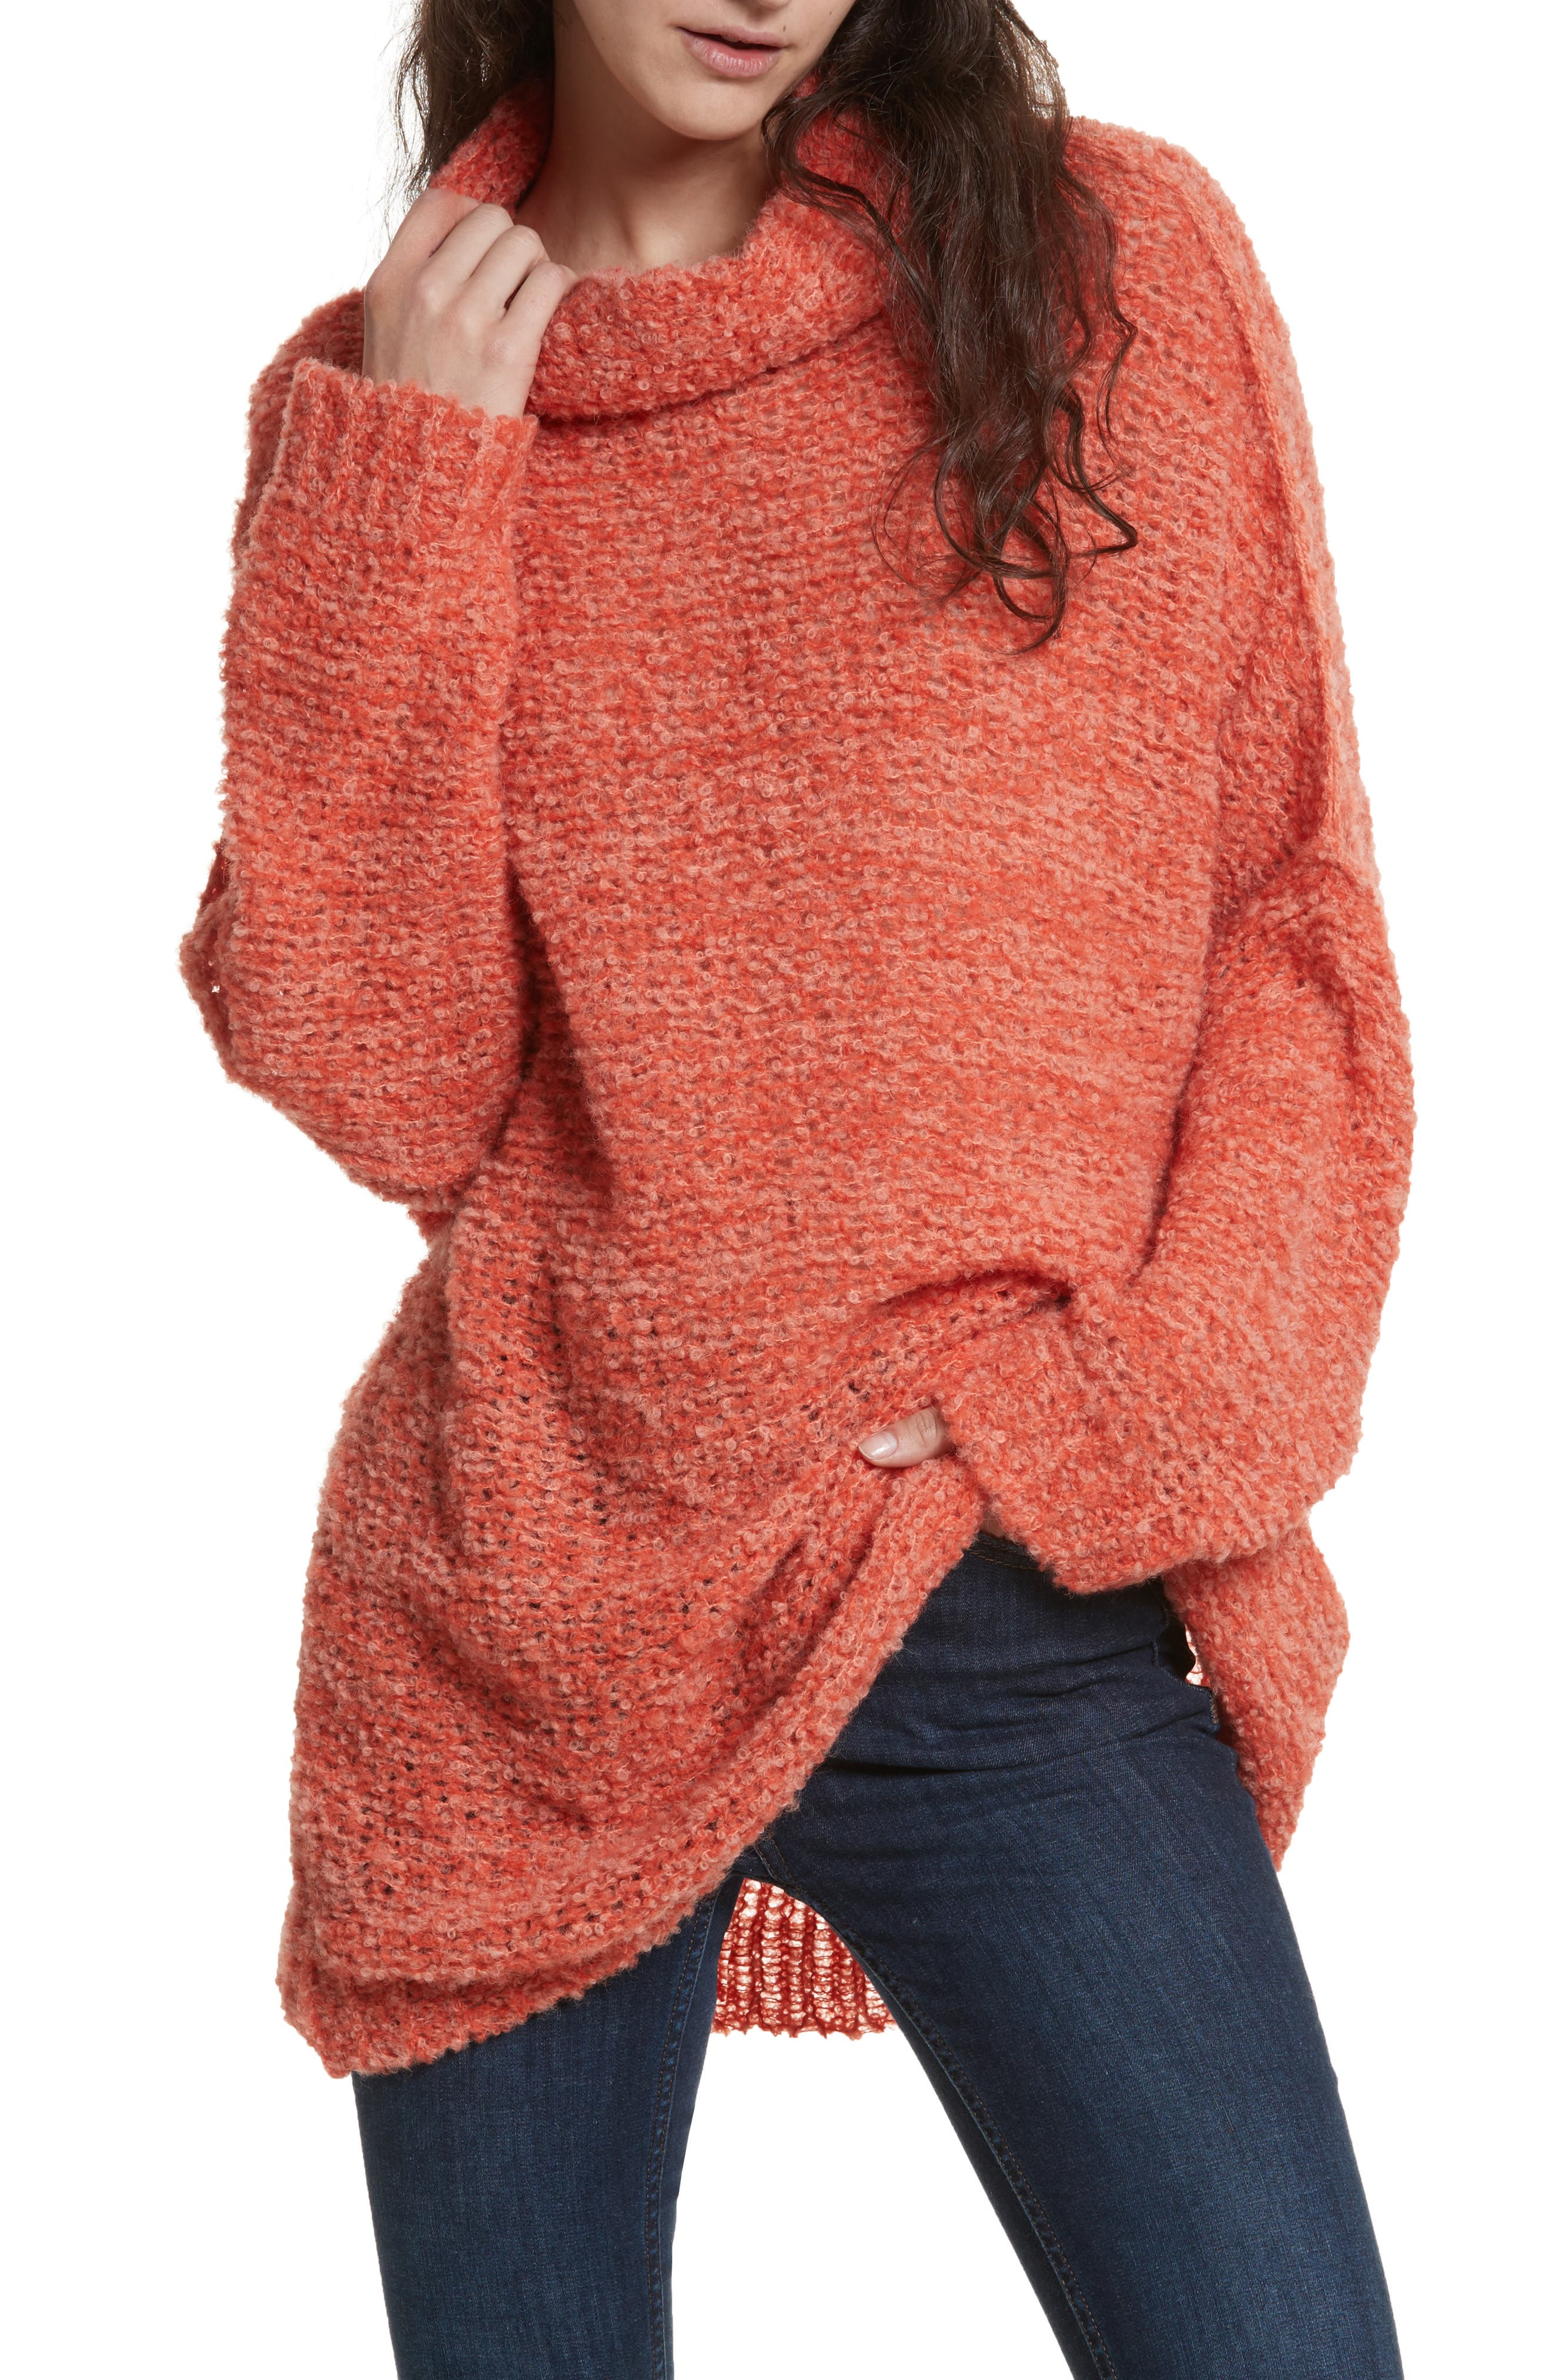 FREE PEOPLE 'She's All That' Knit Turtleneck Sweater, Main, color, 800